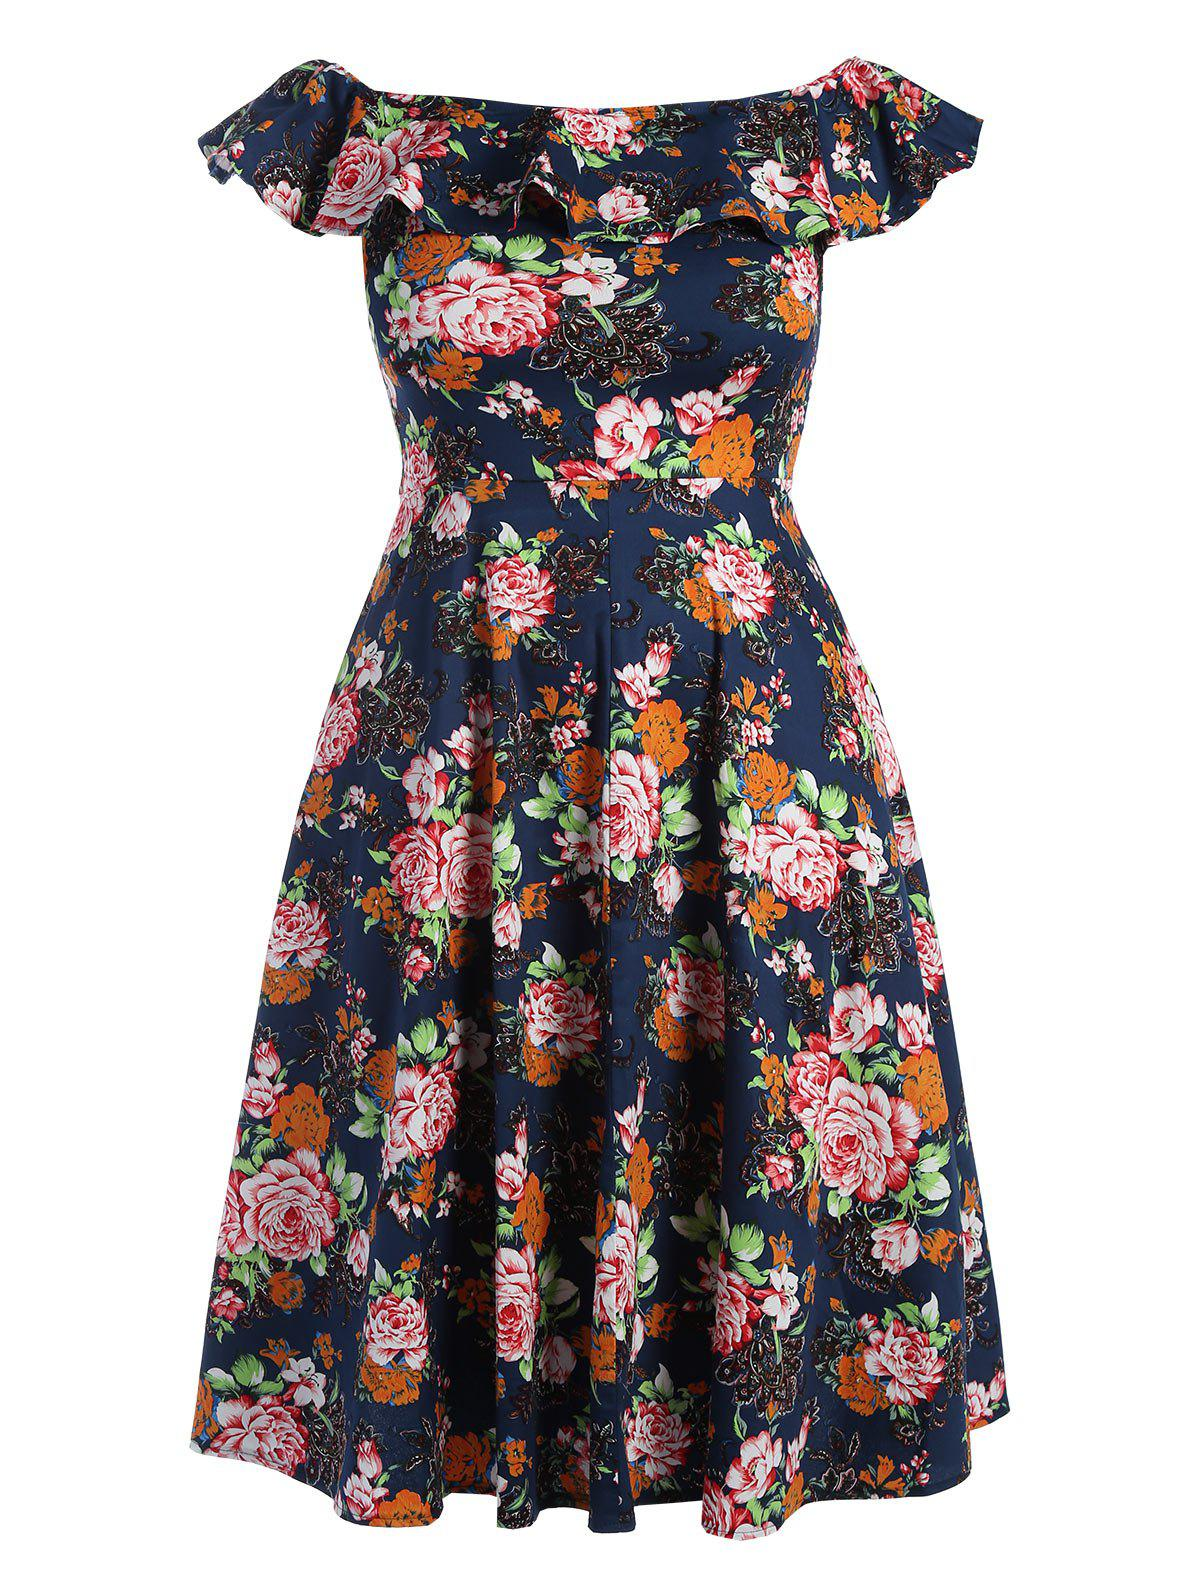 Plus Size Flounce Floral Off The Shoulder Retro Cocktail Dress - PURPLISH BLUE 3XL